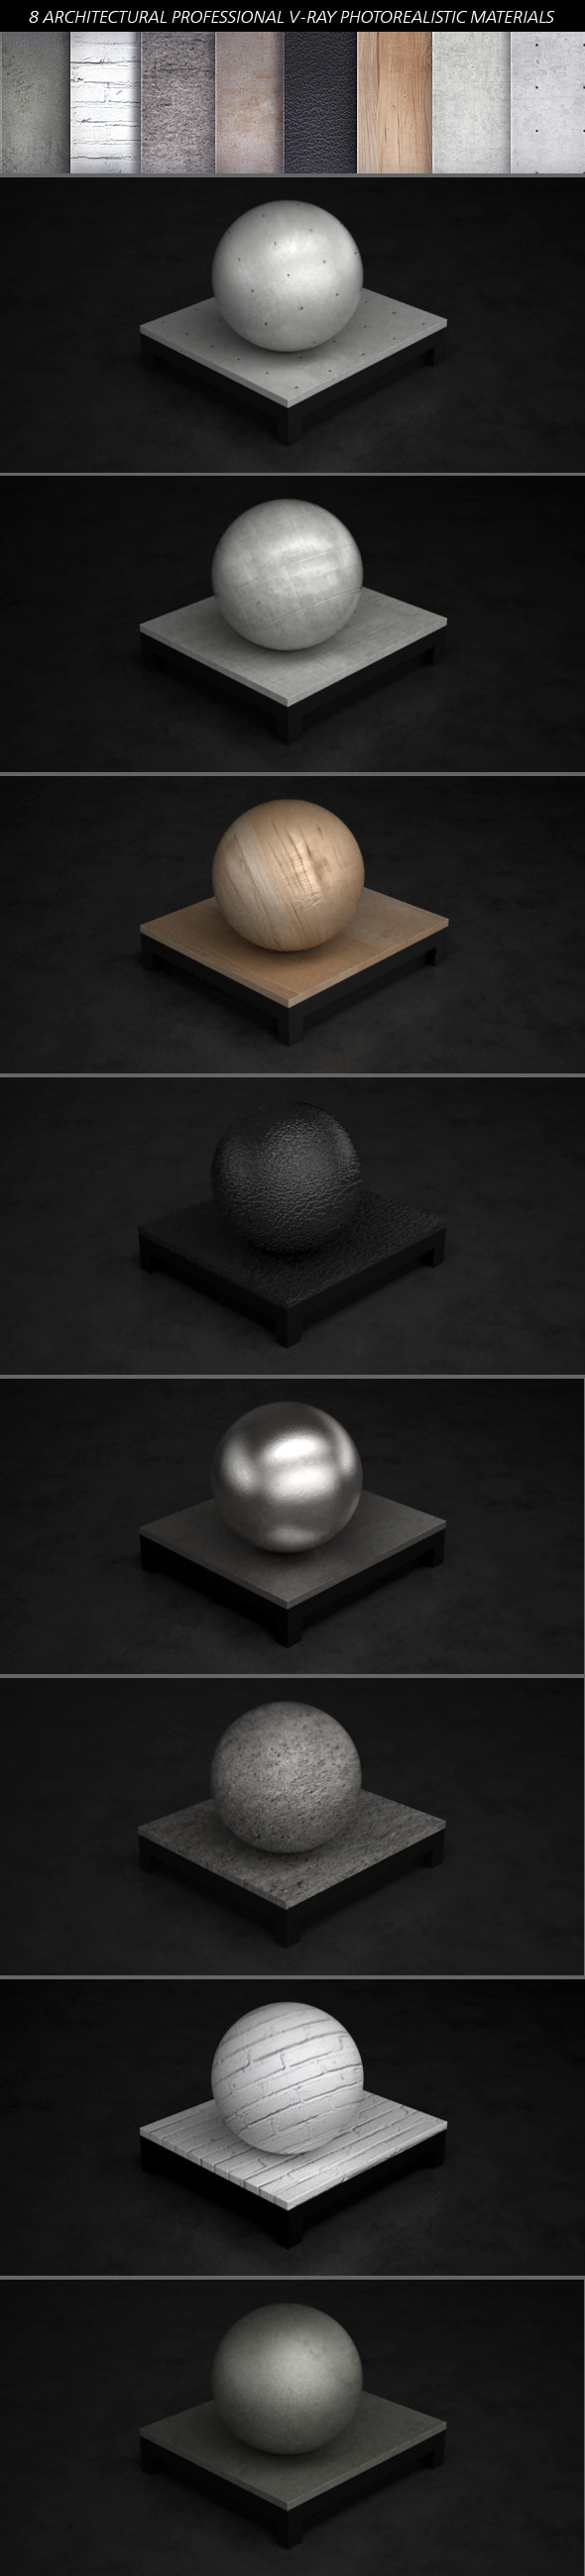 3DOcean V-Ray Architectural Photorealistic Materials 3561515